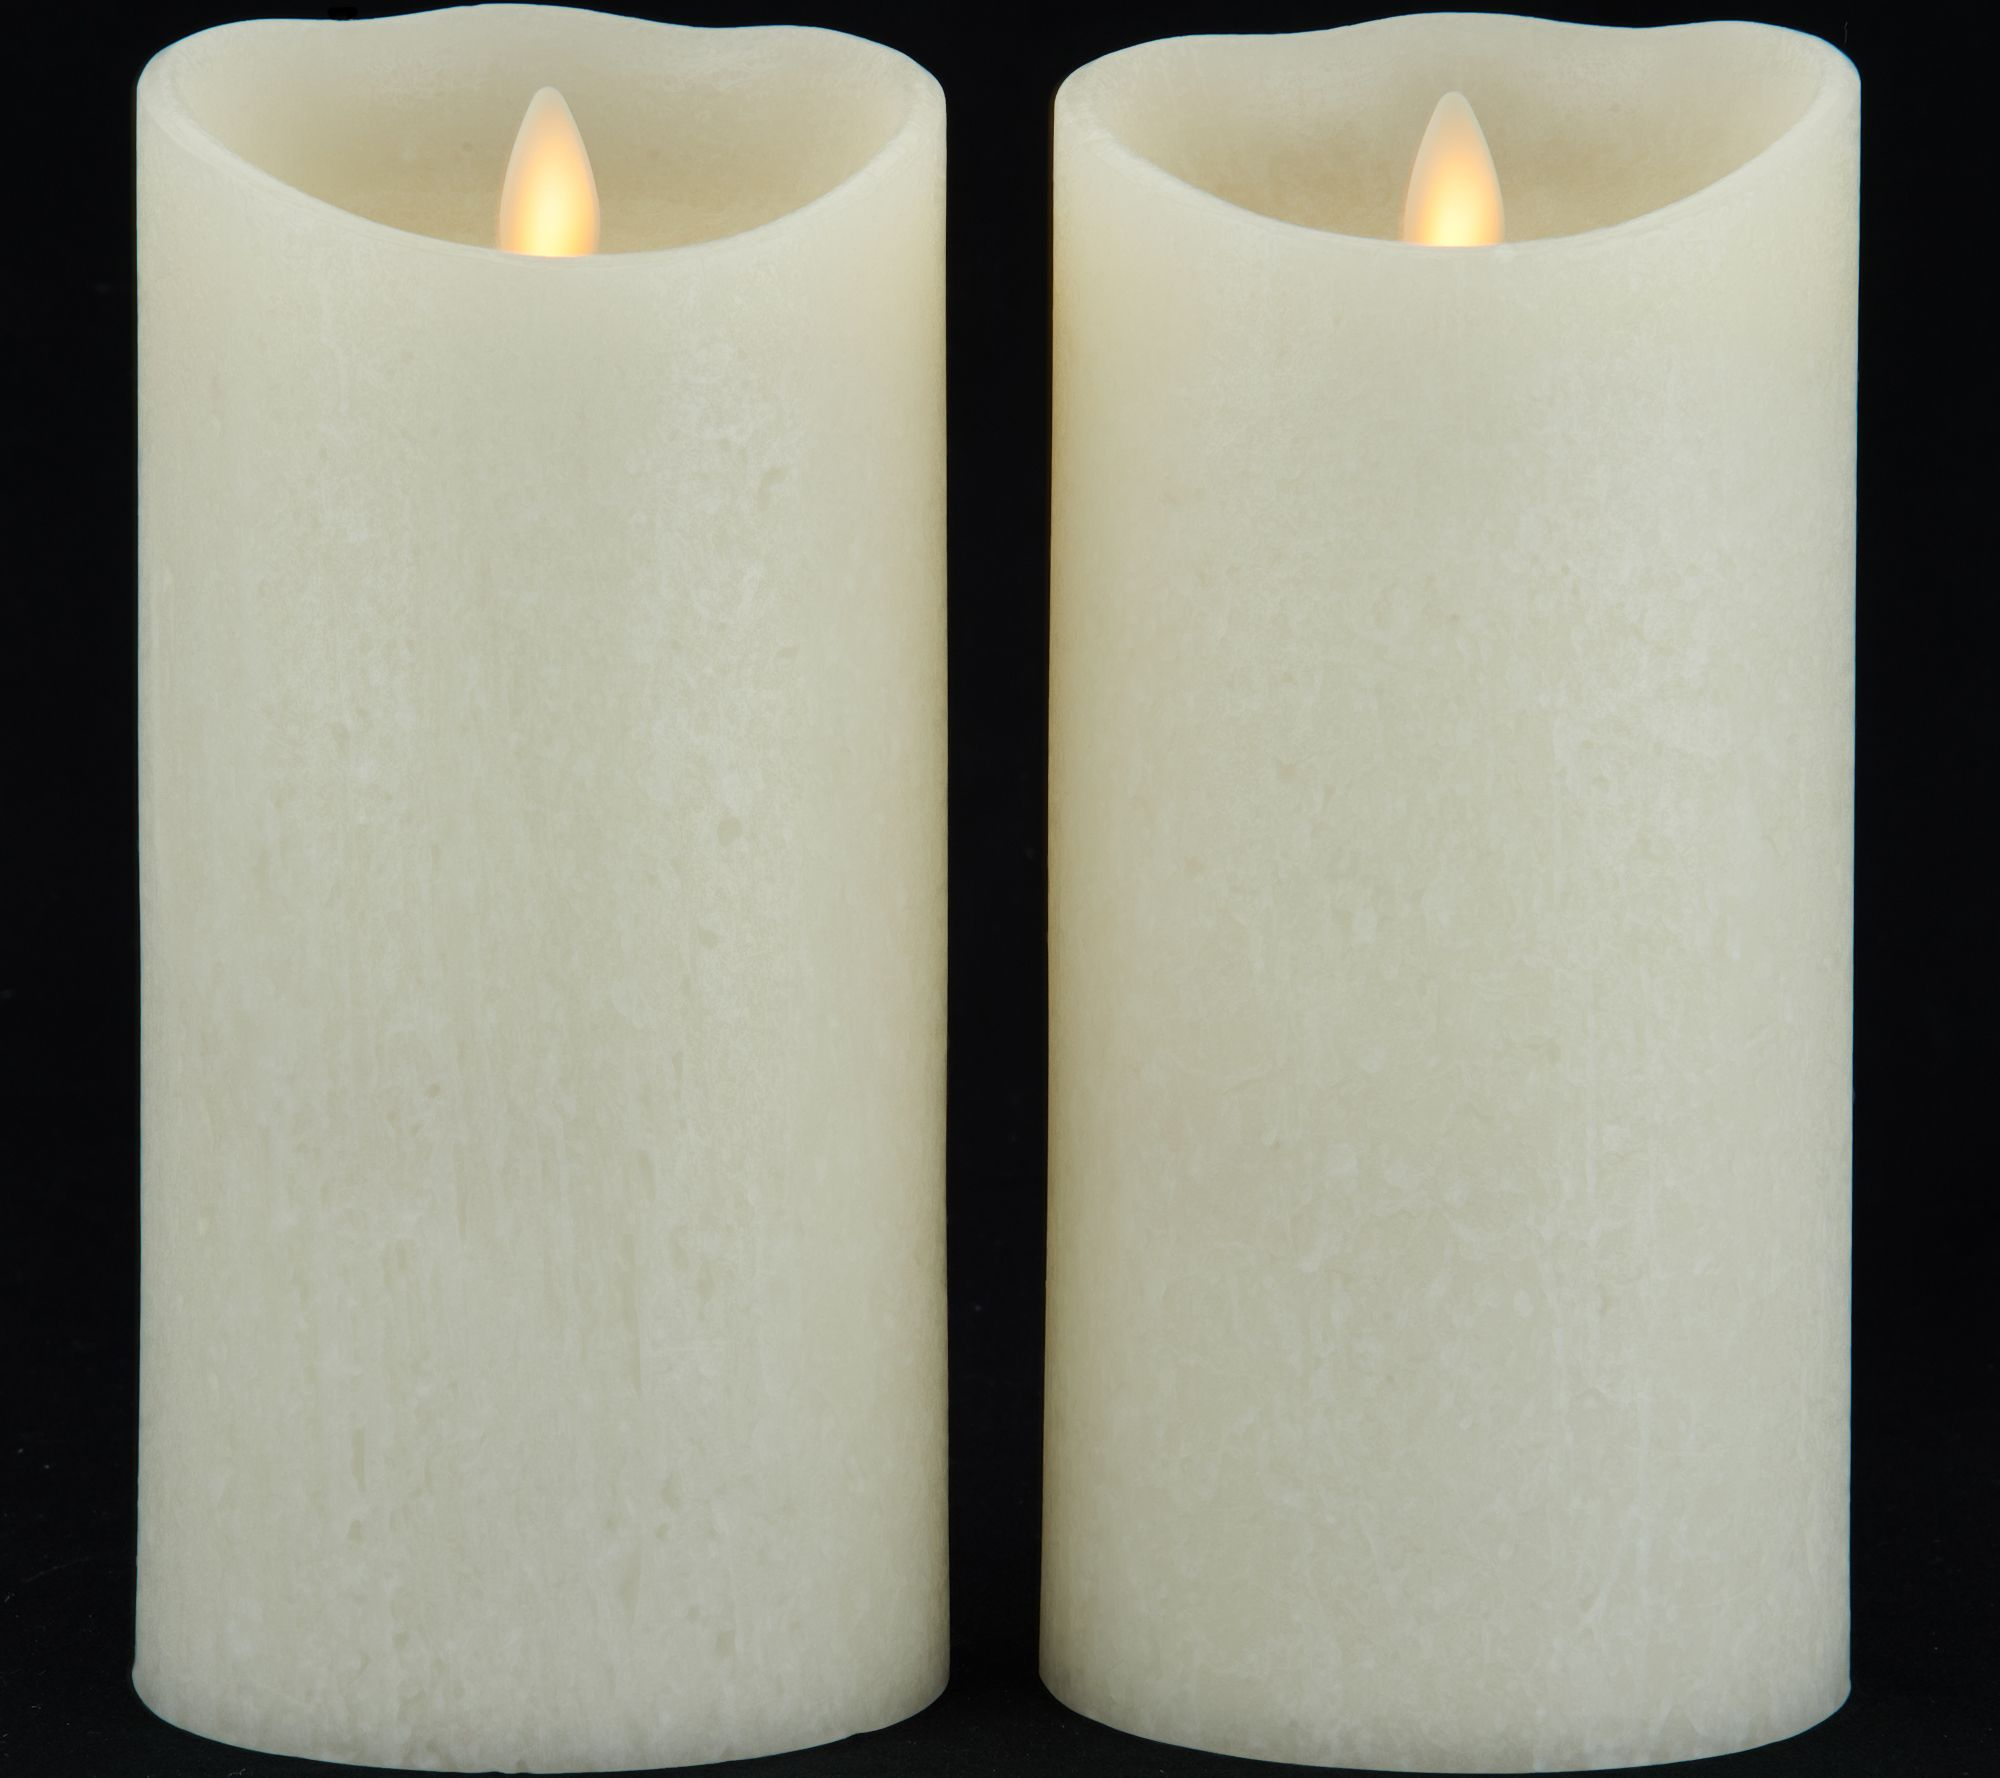 Bethlehem lights window candles with timer - Bethlehem Lights Touch Candle Set Of 2 7 Candles In Gift Boxes Page 1 Qvc Com